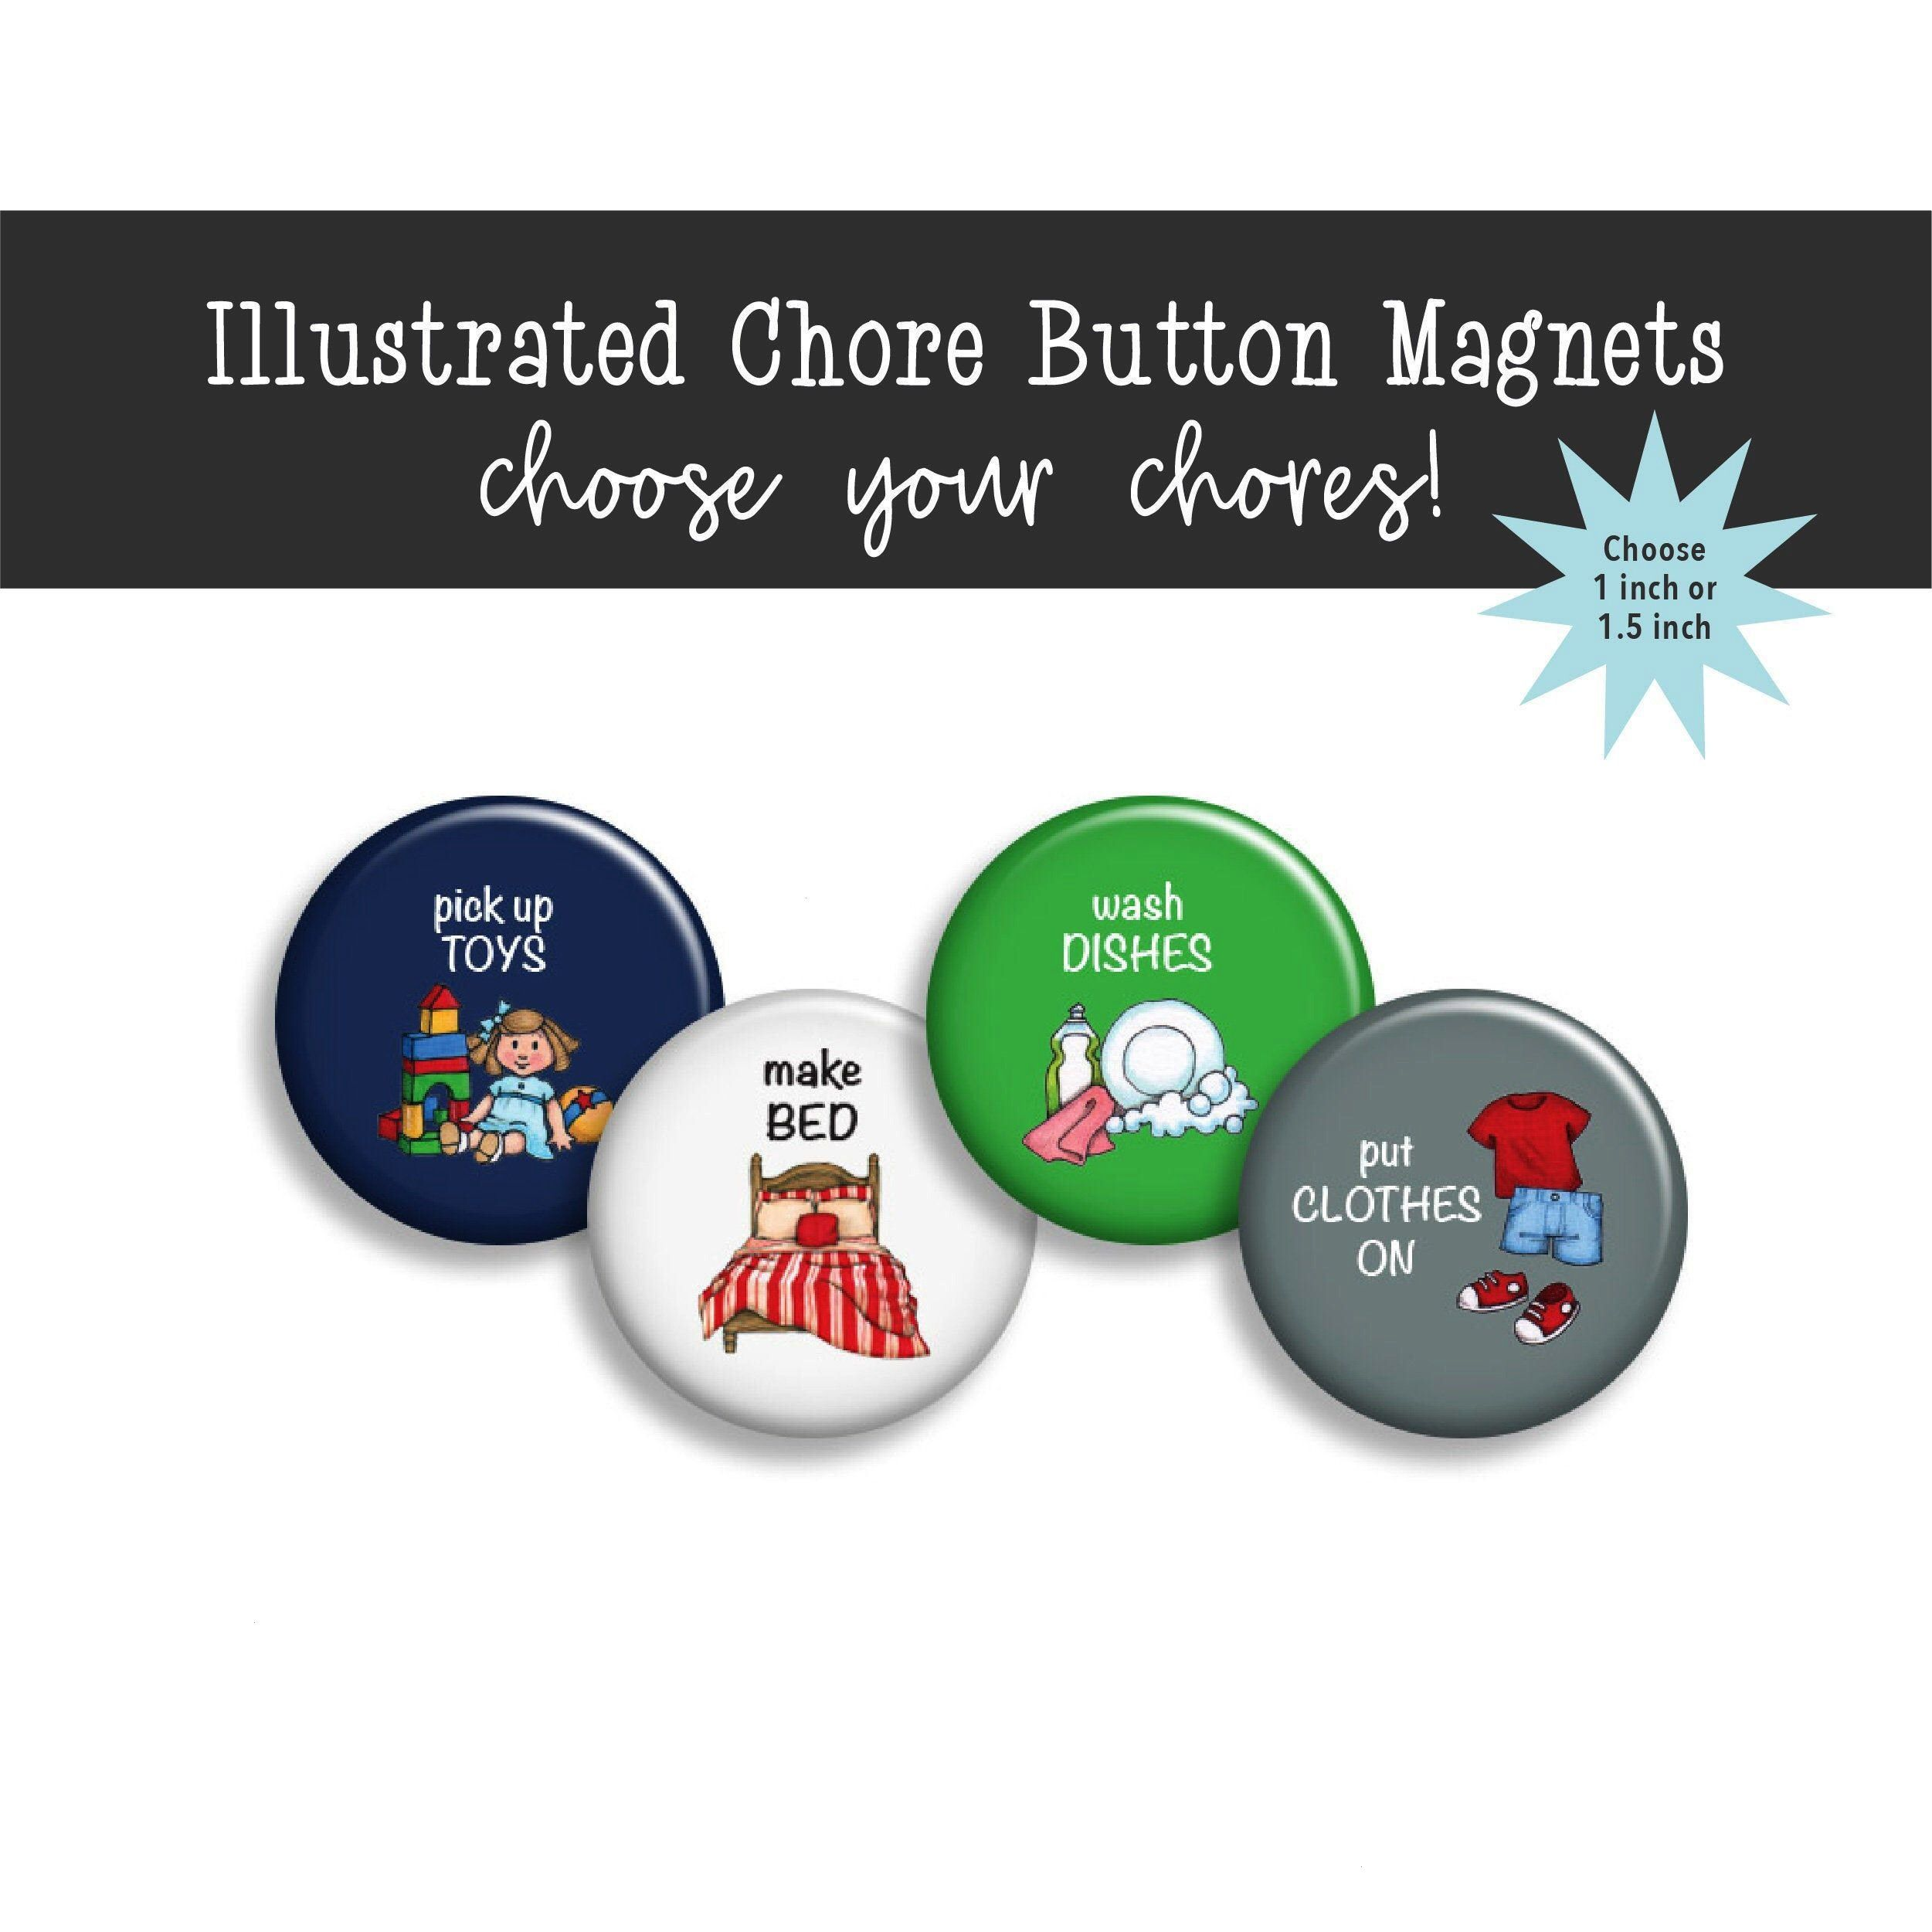 Button Magnets Boy Chore Magnets Blue and Green Chore Magnets Chore Magnets Task Magnets Refrigerator Magnets Excited to share this item from my shop Chore Button Magnets...